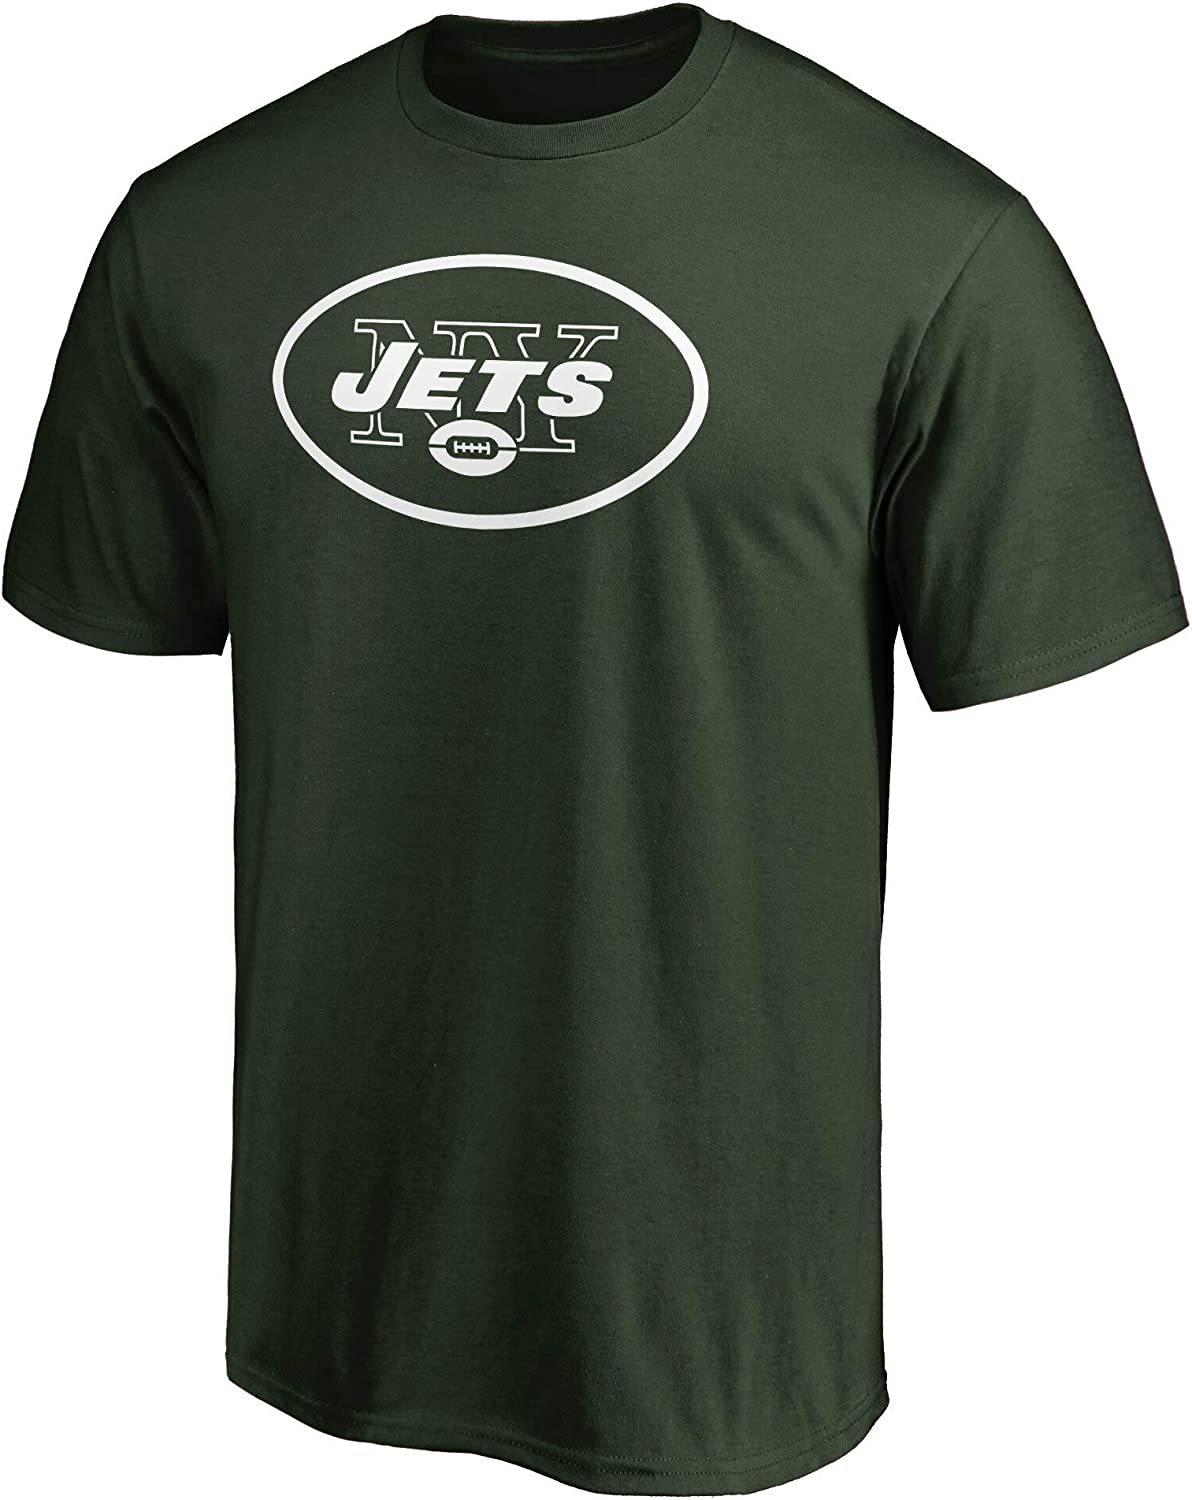 OuterStuff NFL Kids Youth Primary Logo Home Alternate T-Shirt